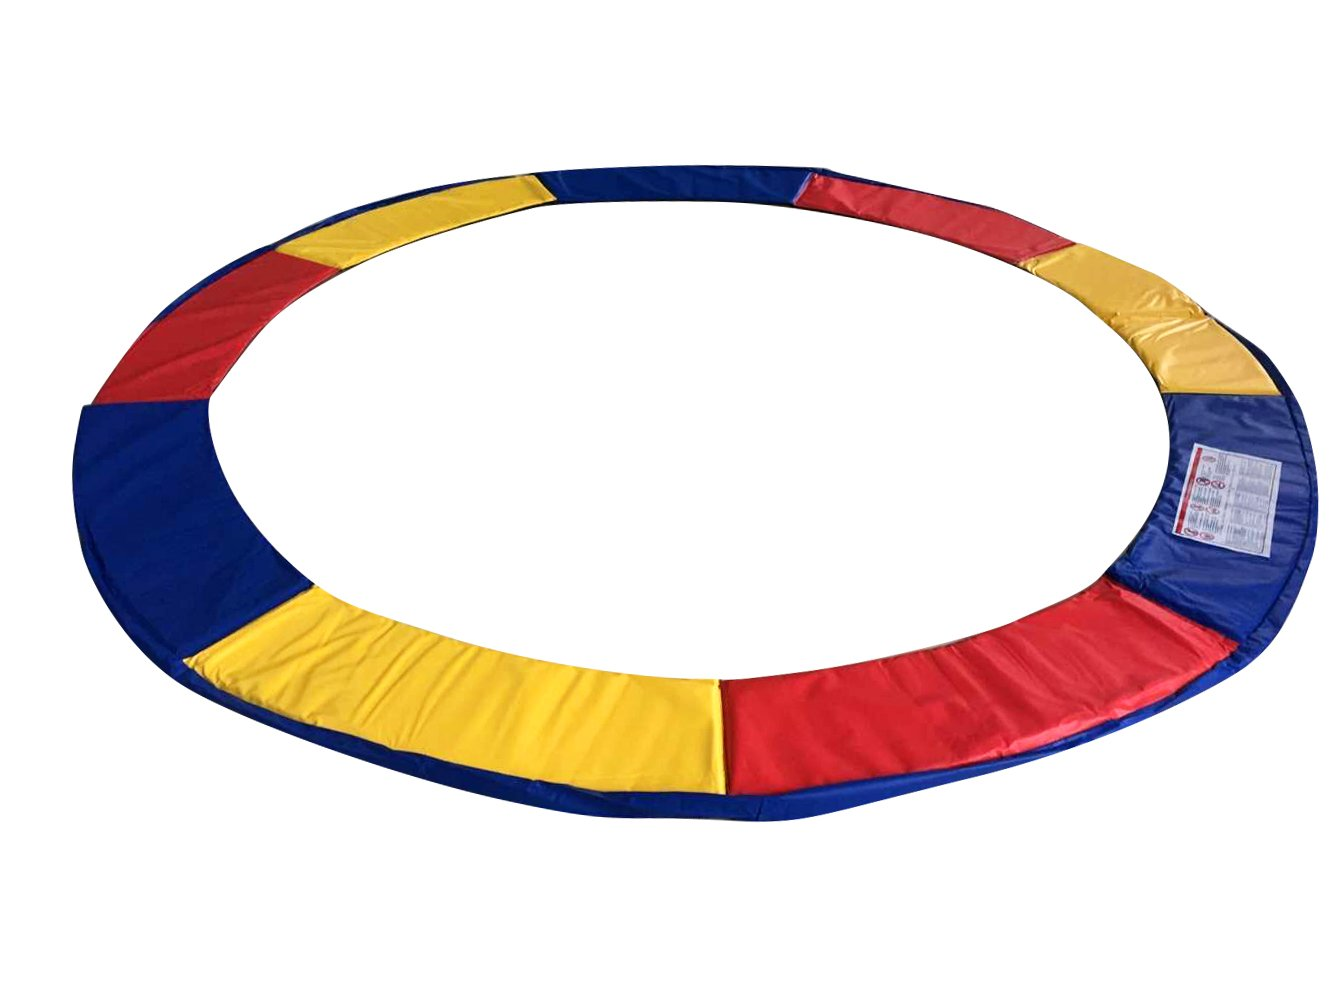 Exacme Trampoline Replacement Safety Pad Frame Spring 10-16FT Colors Round Cover (12 FT) by Exacme (Image #1)